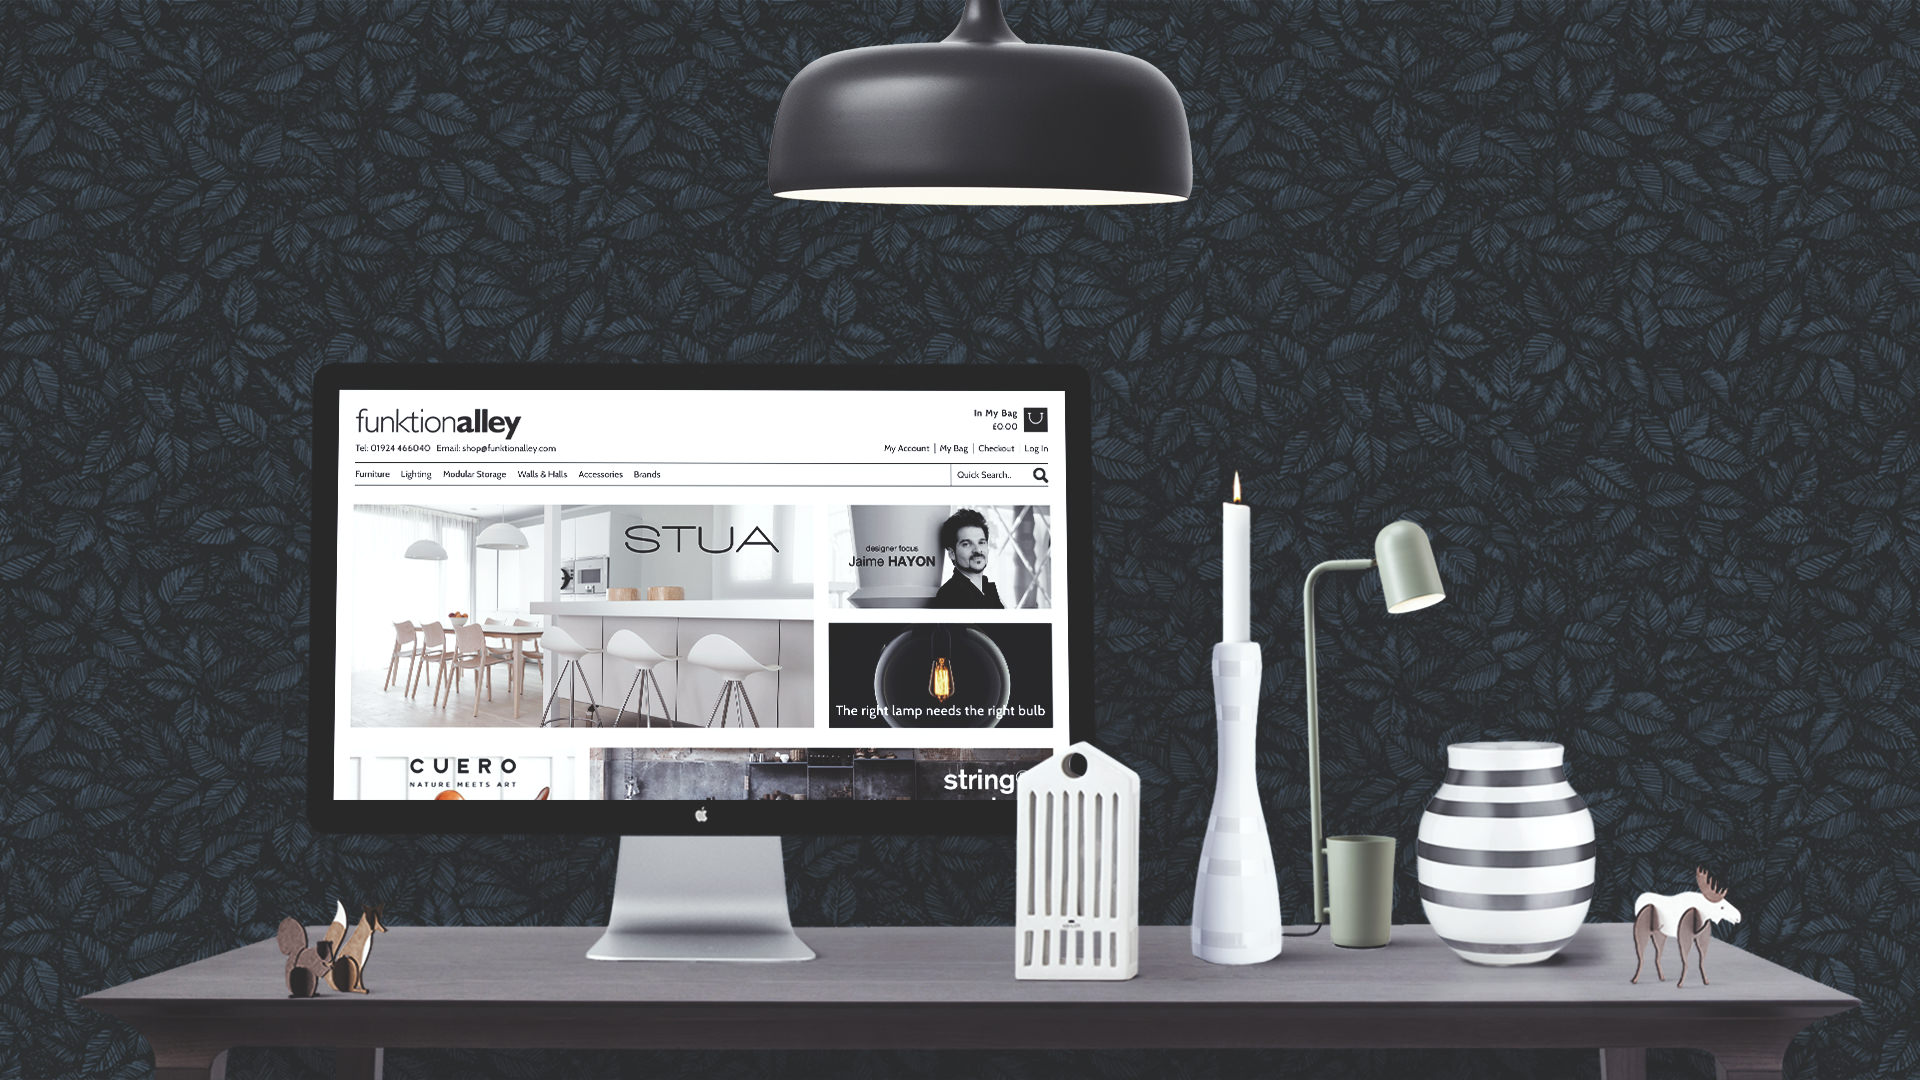 Funktionalley ecommerce website design